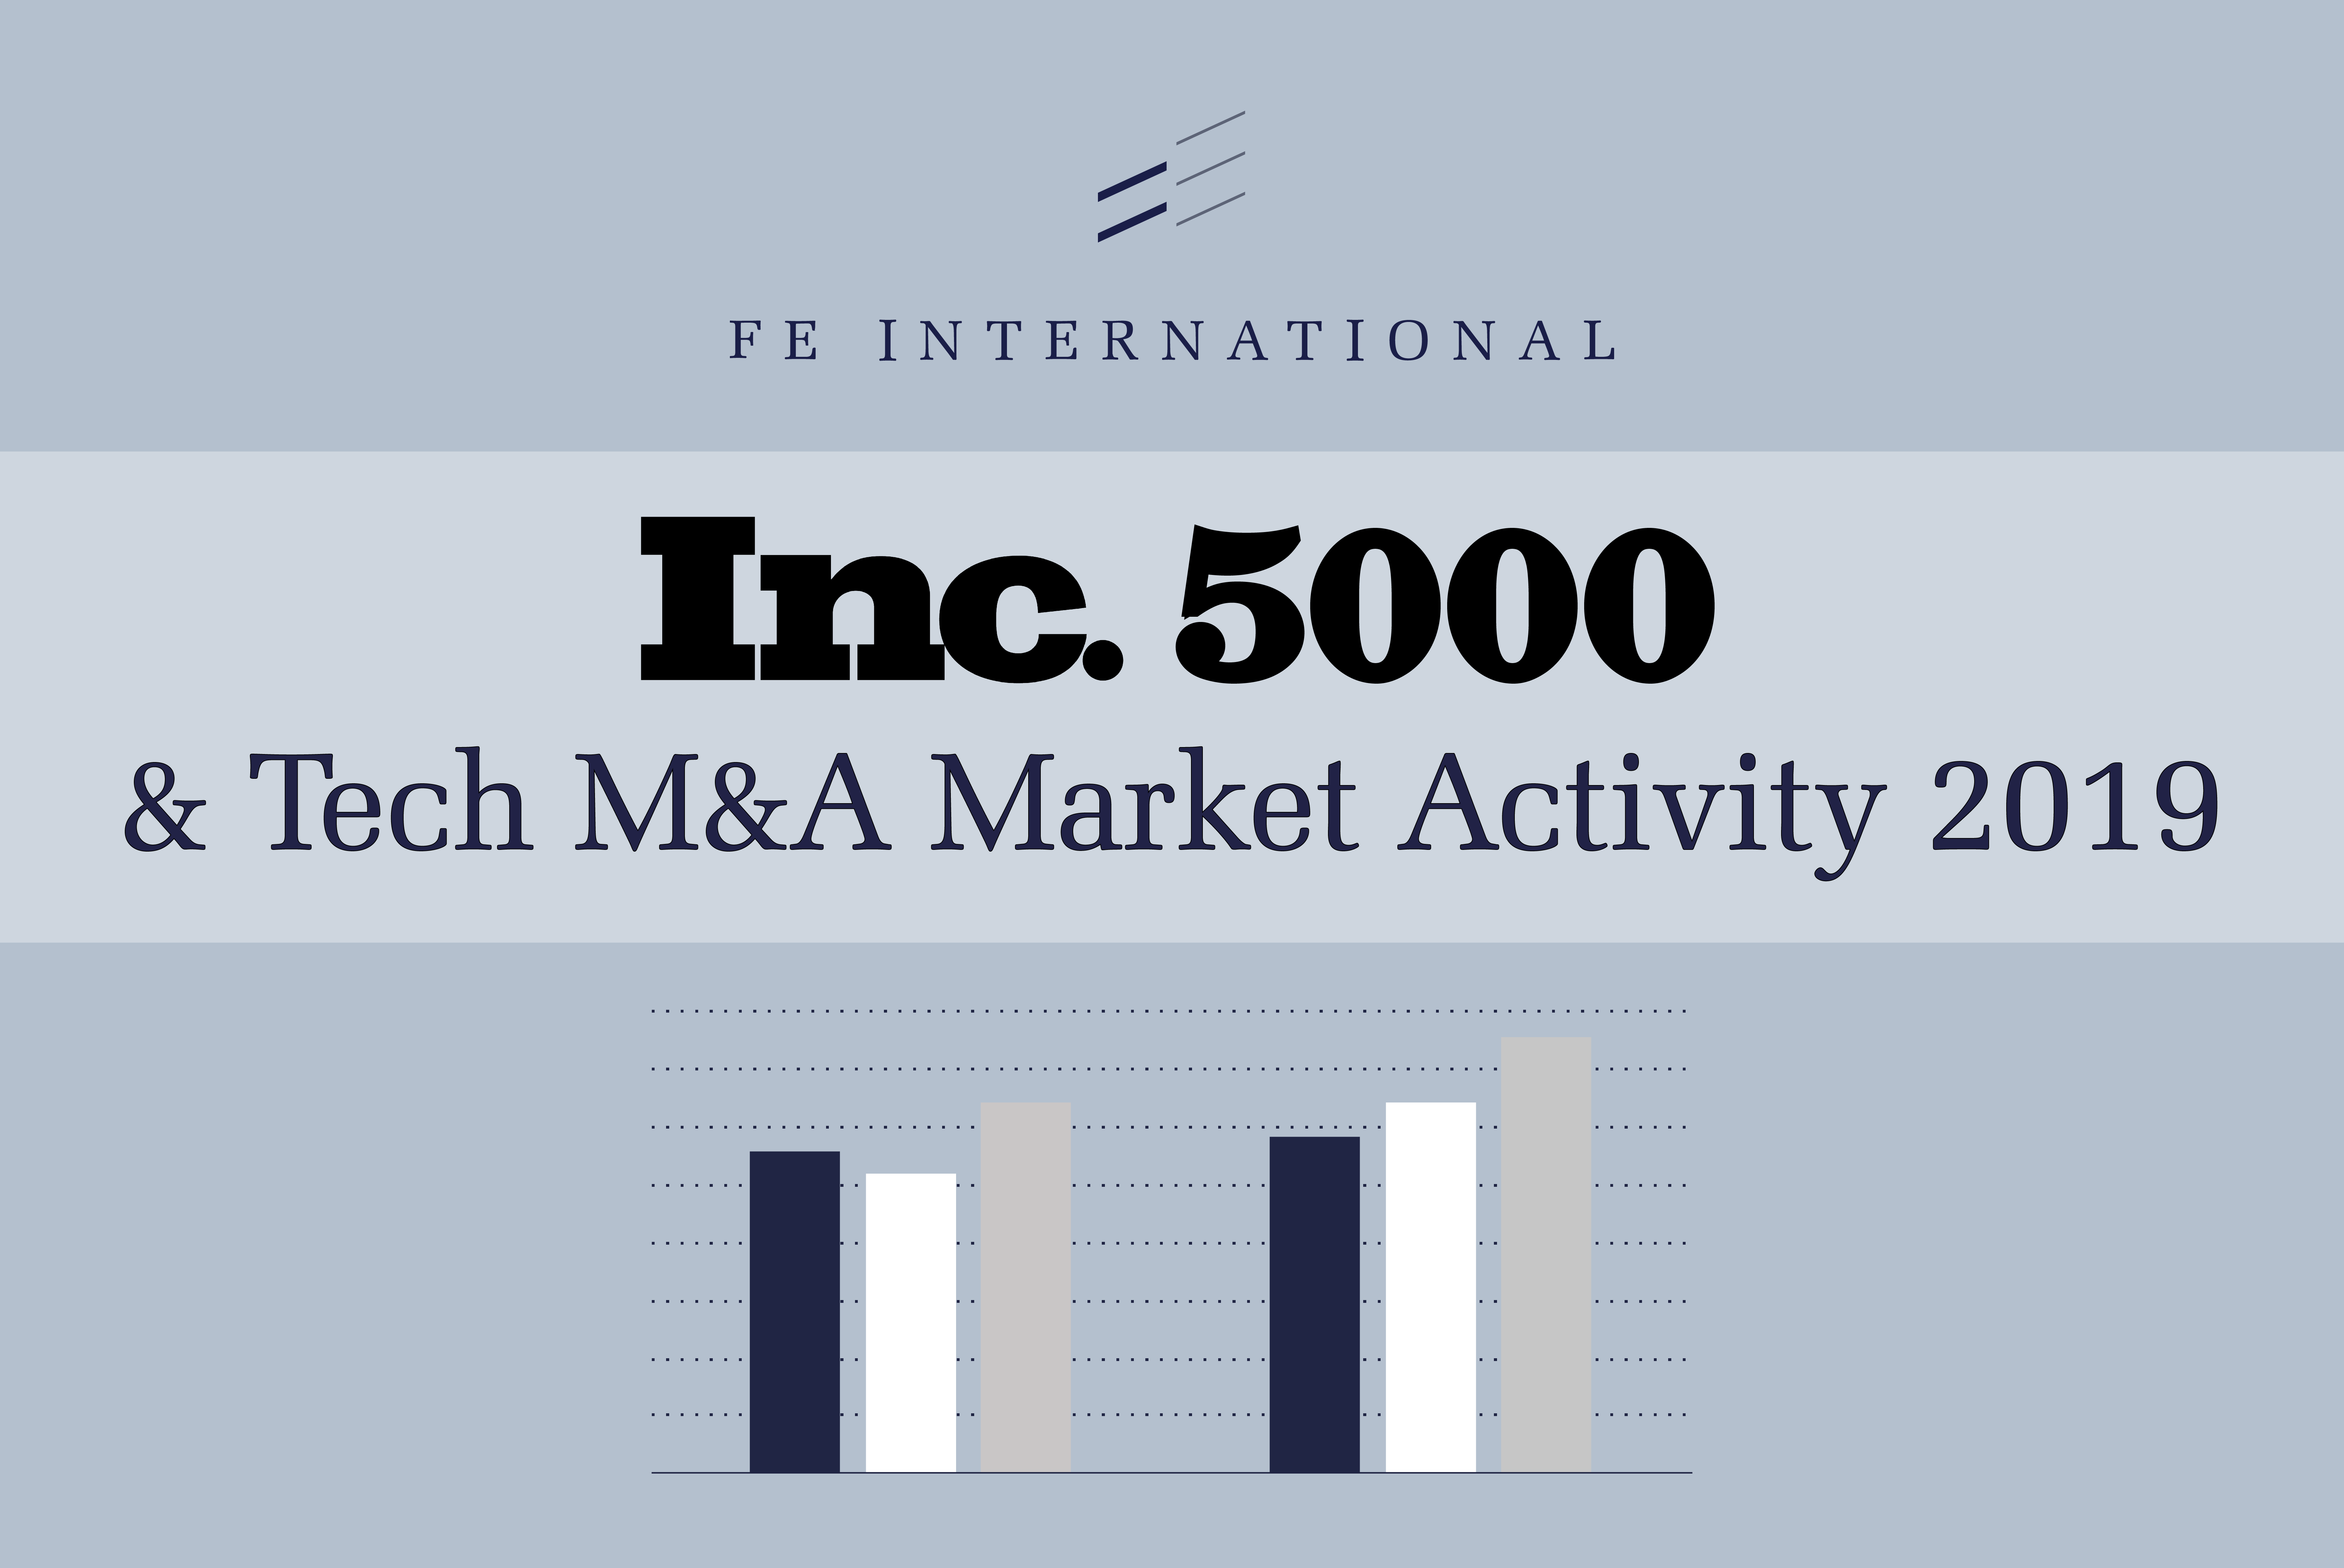 Inc 5000 & Tech M&A Market Activity 2019